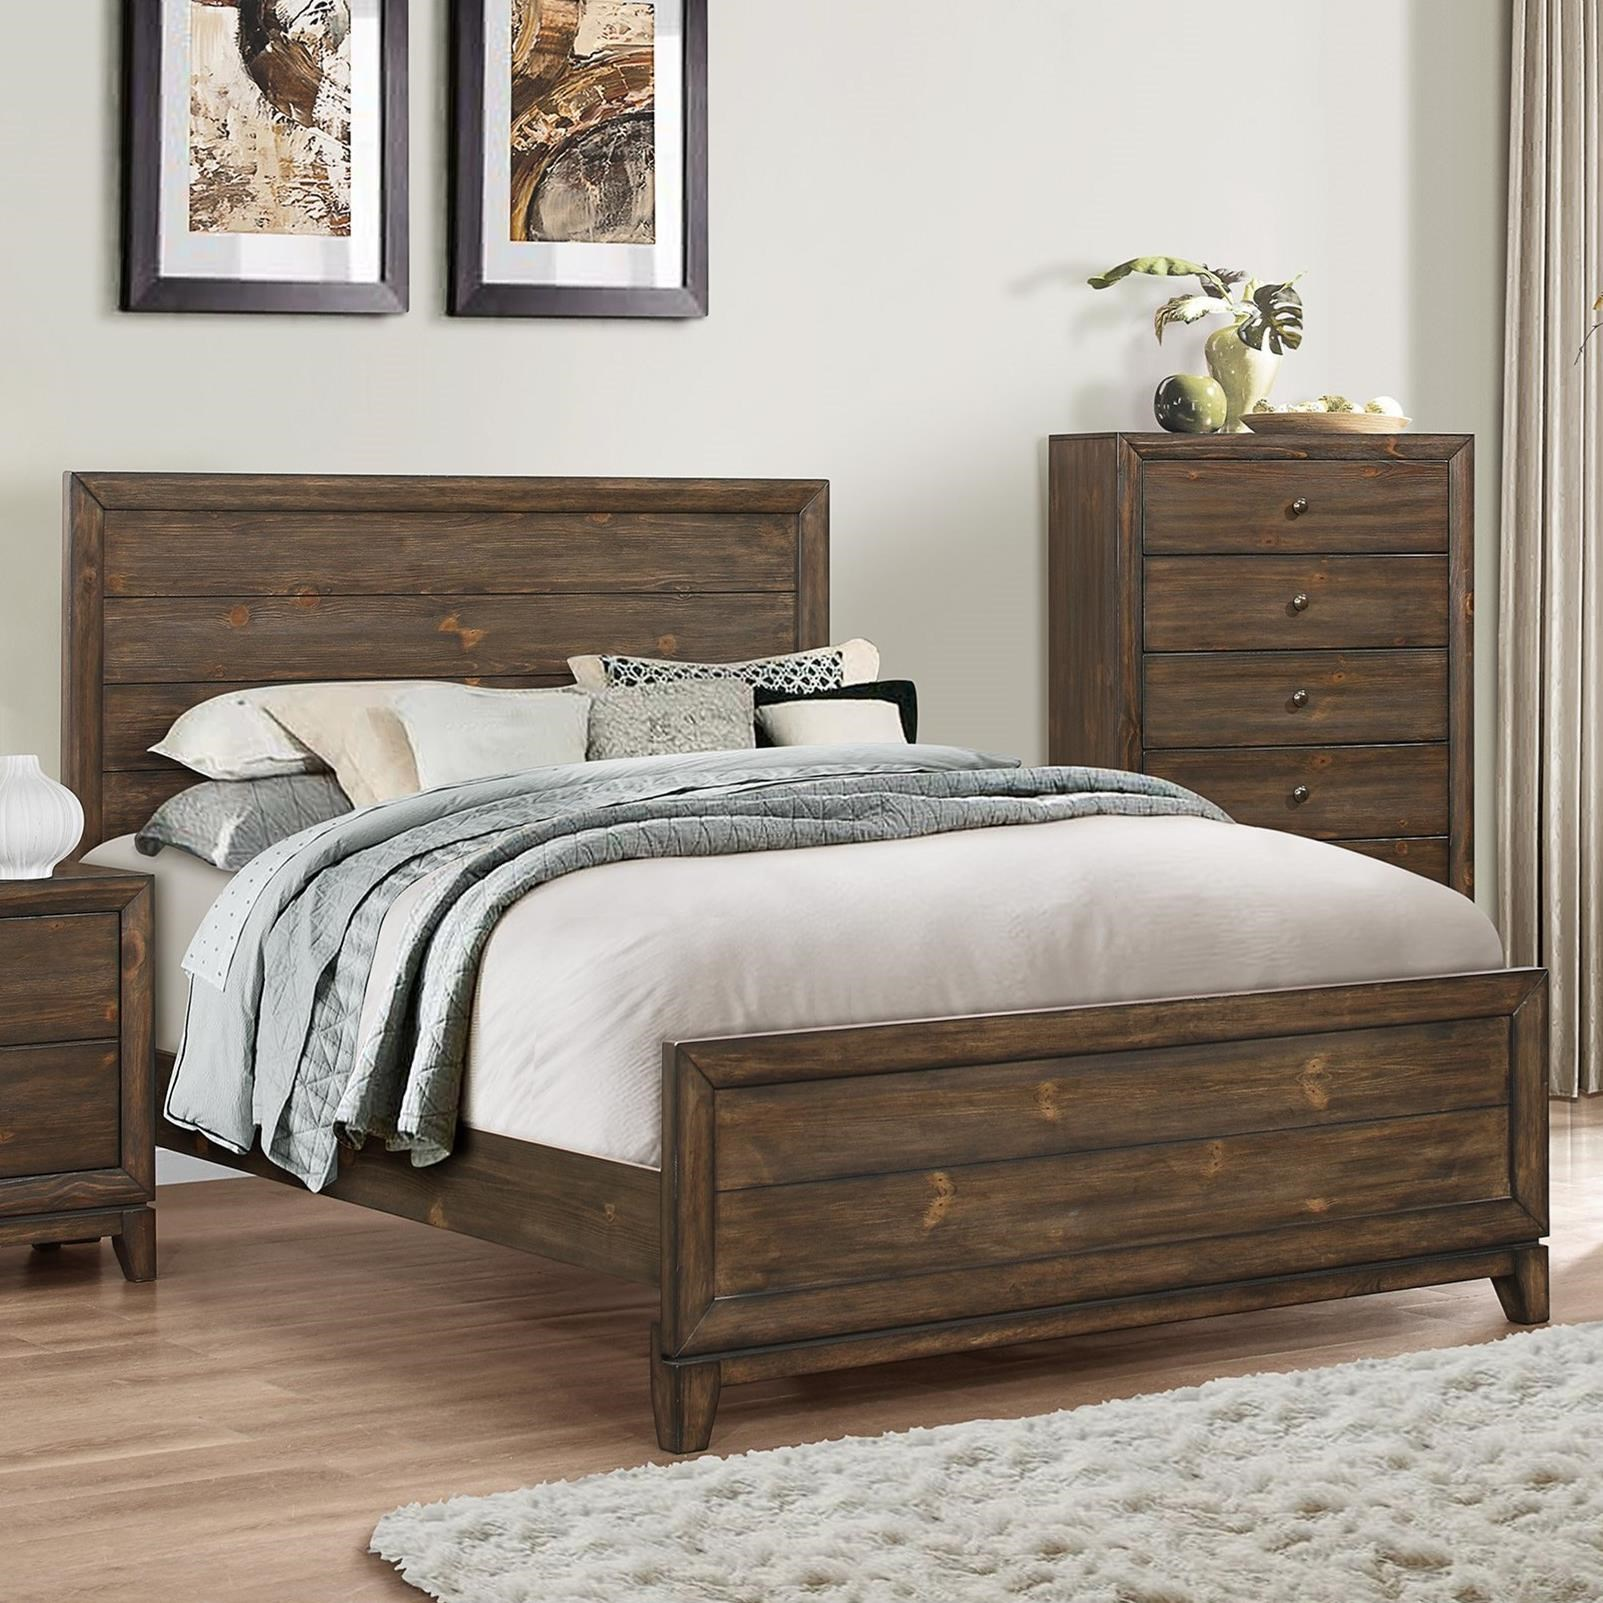 Crown mark rhone queen planked headboard and footboard bed for Queen footboard